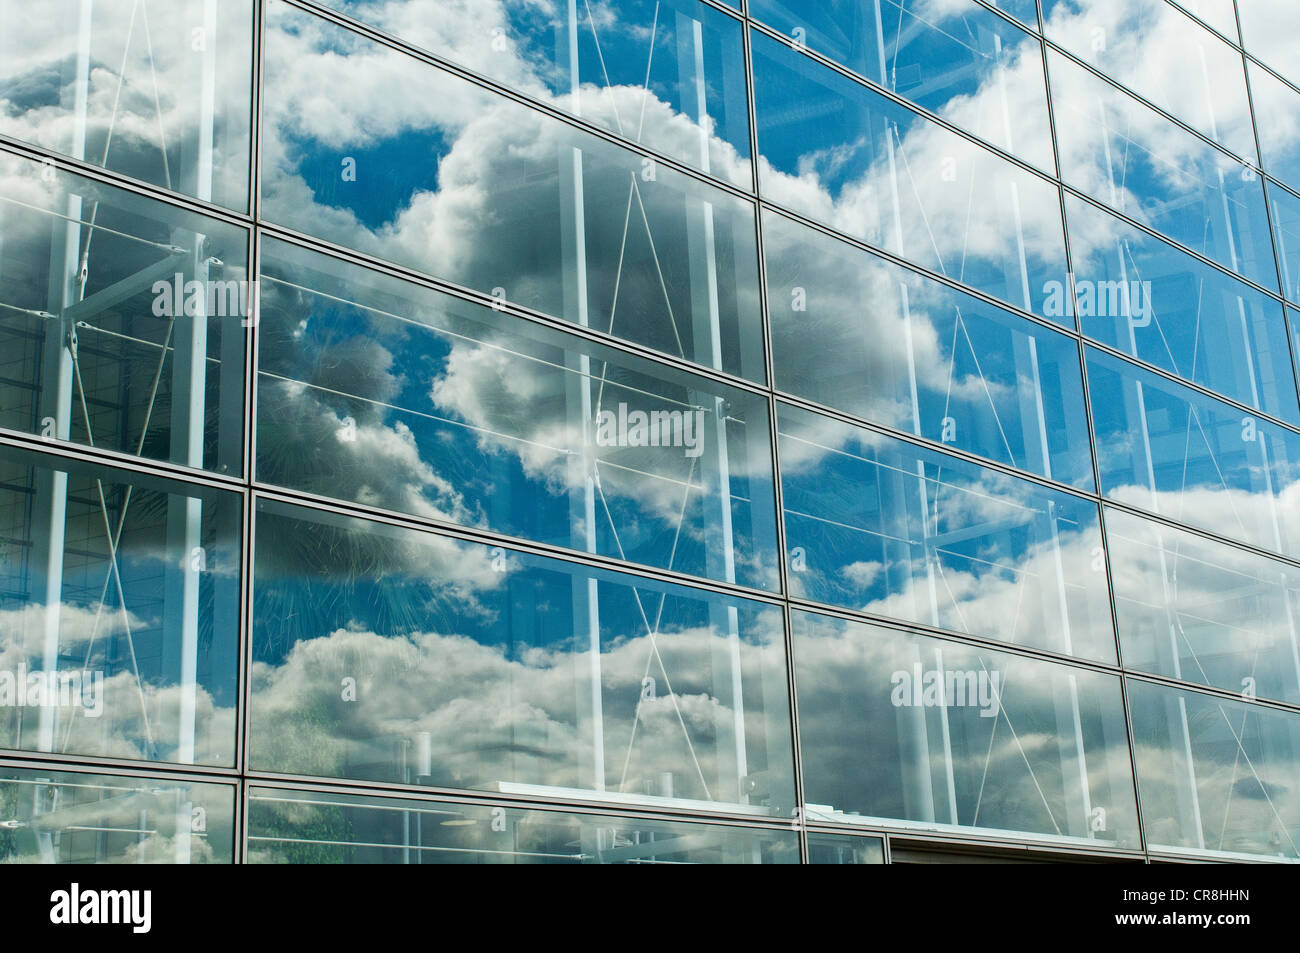 Cloudy blue sky reflected in office windows - Stock Image